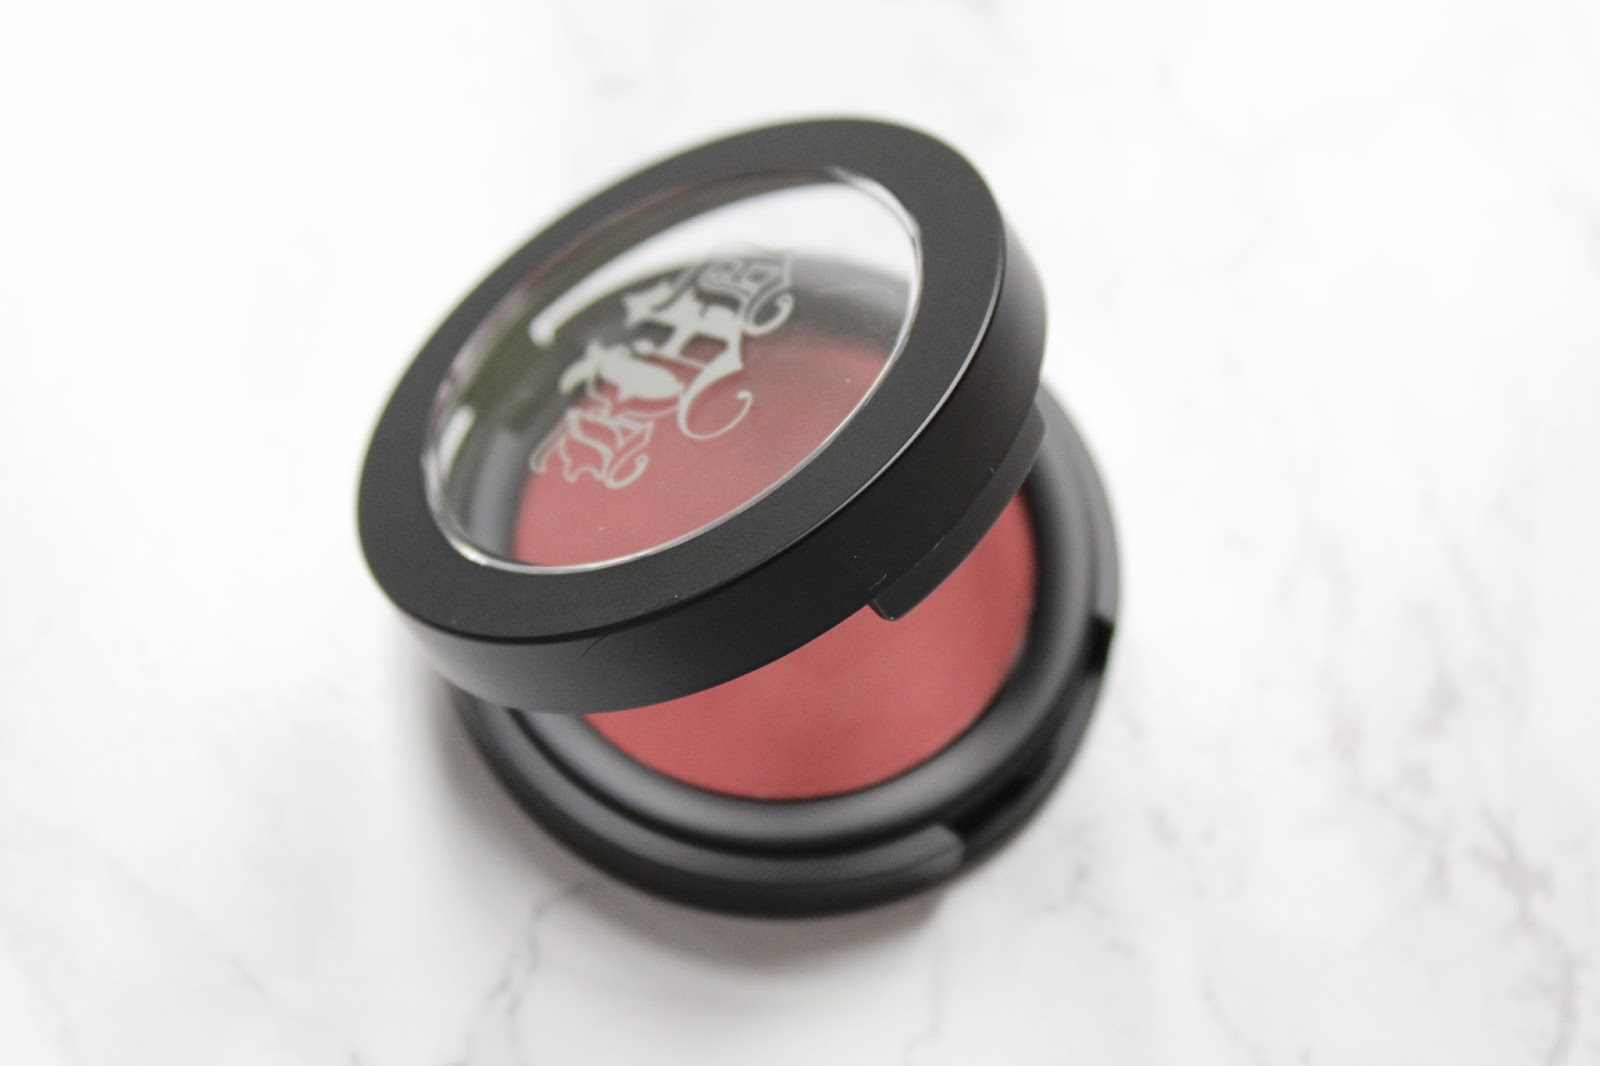 Kat Von D Lolita Blush Reviewed